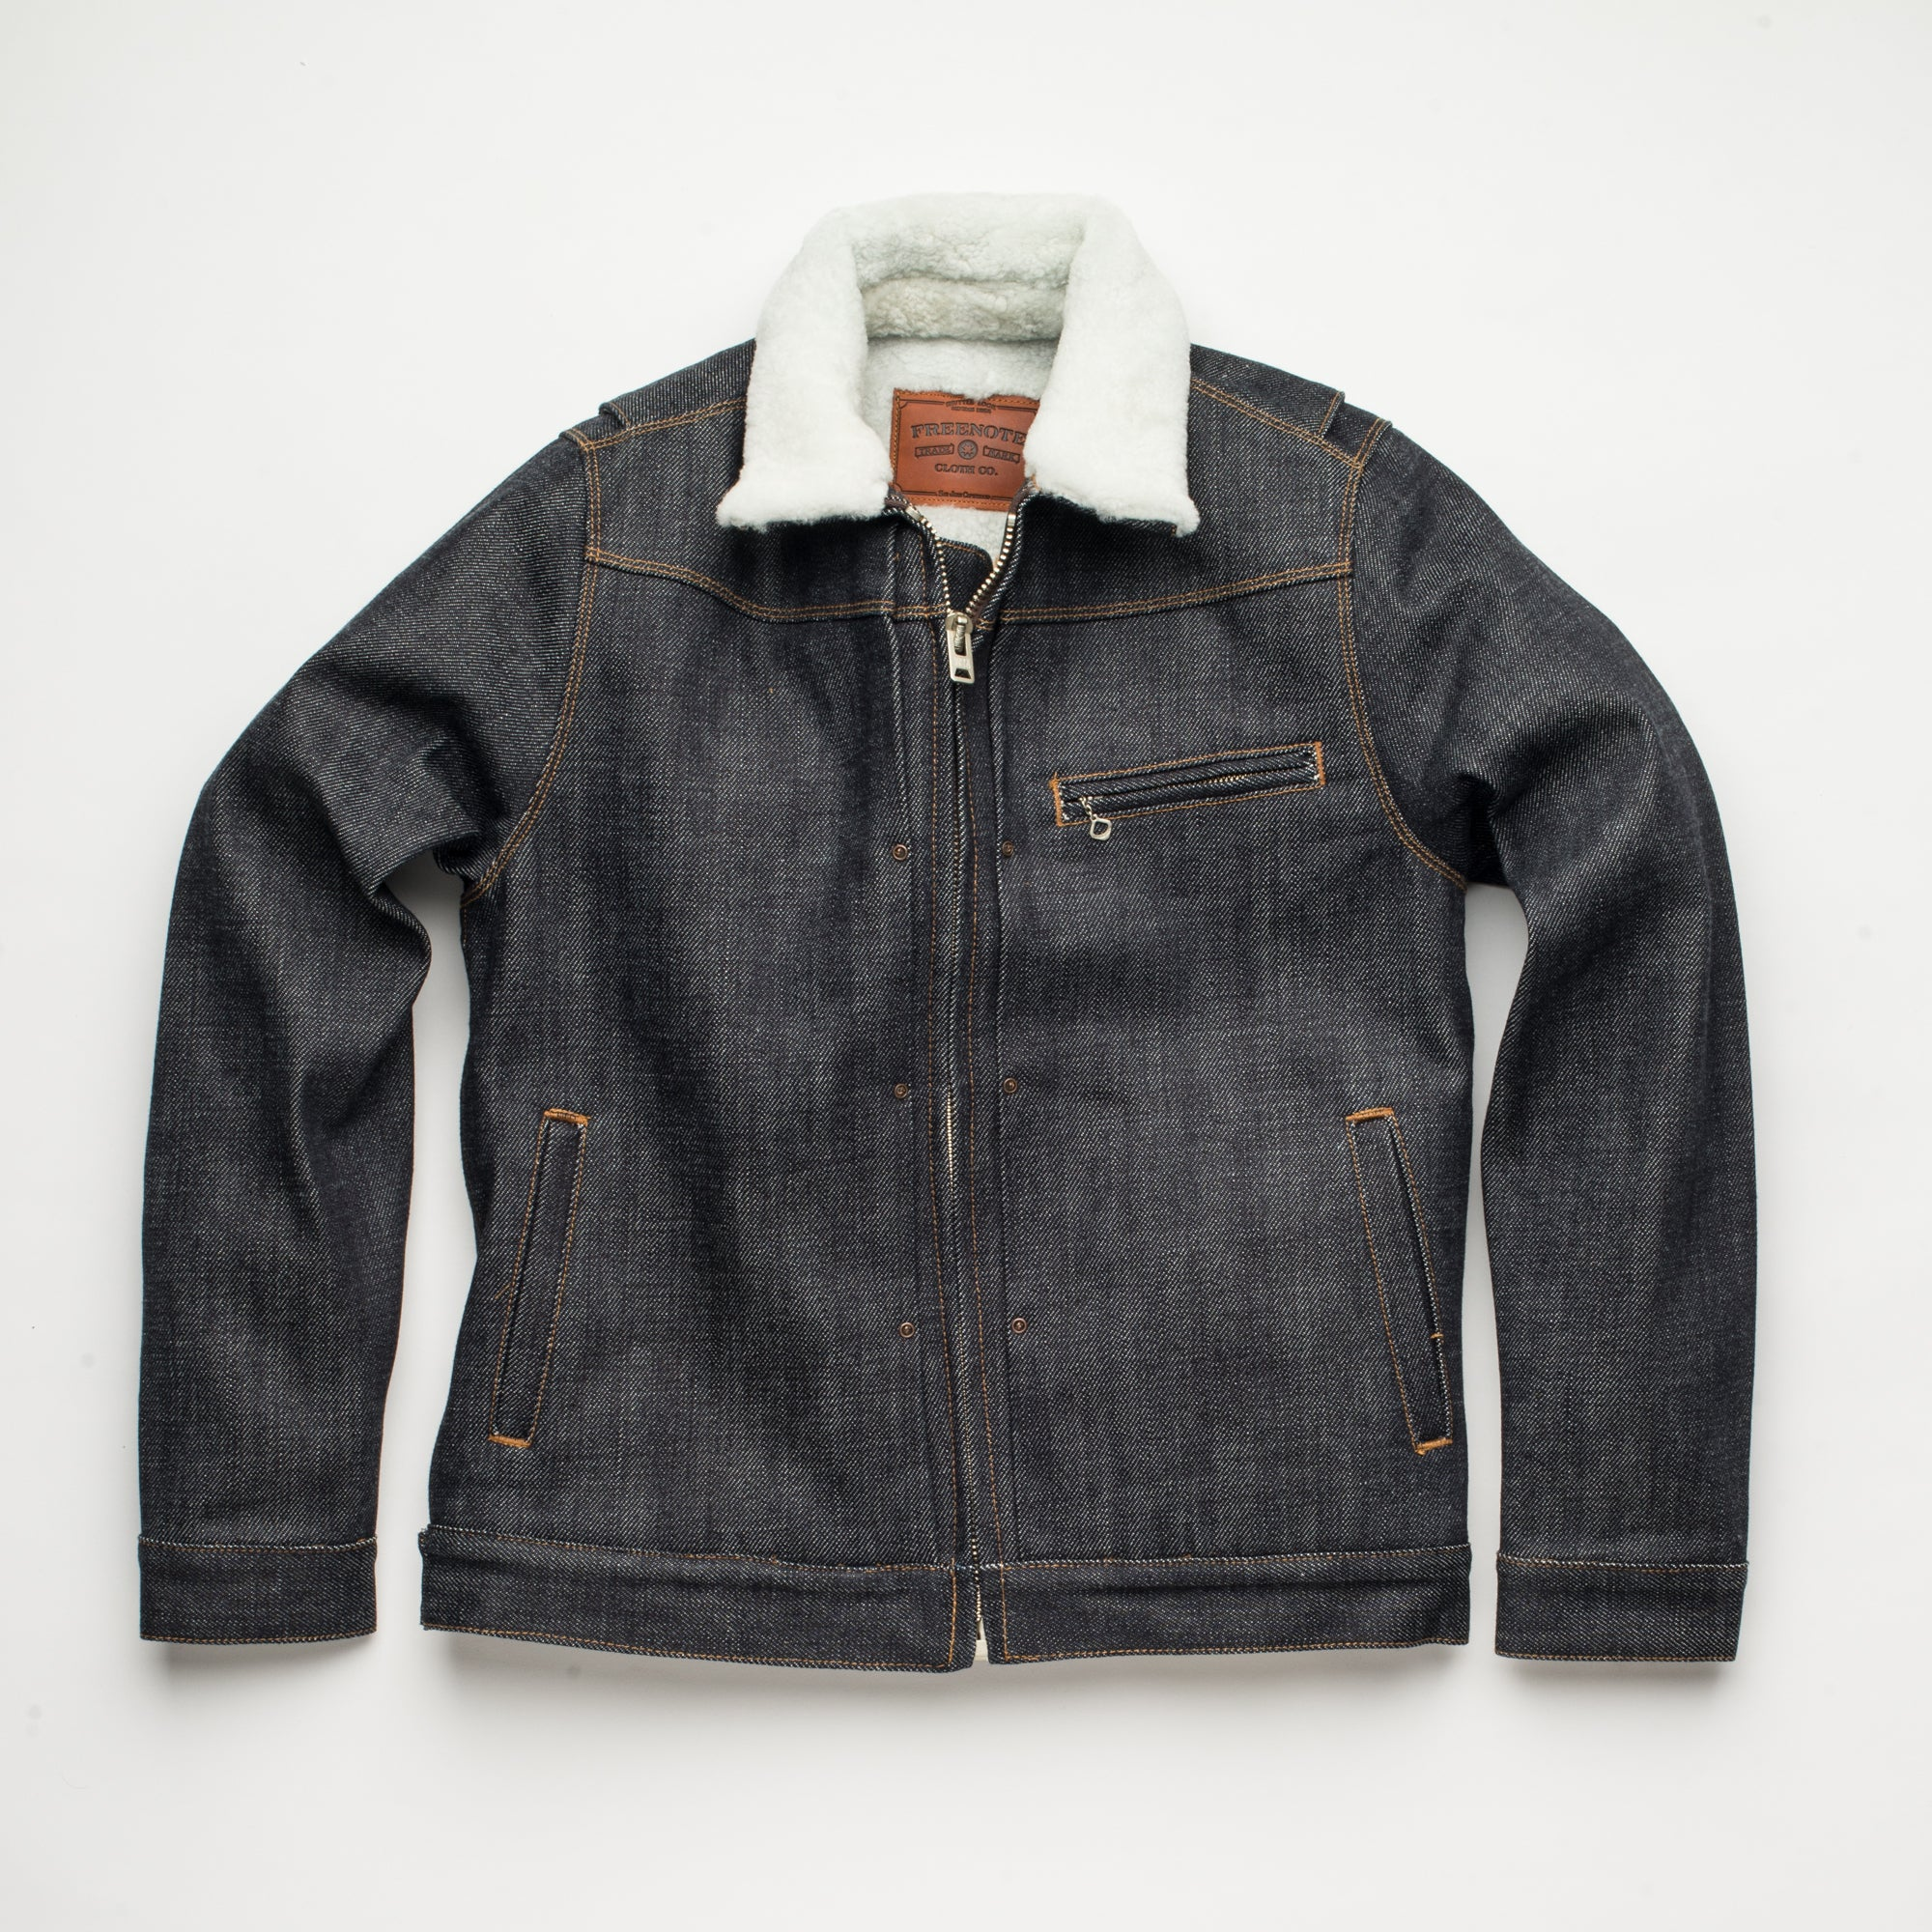 RJ2 Denim <span>White Shearling</span>